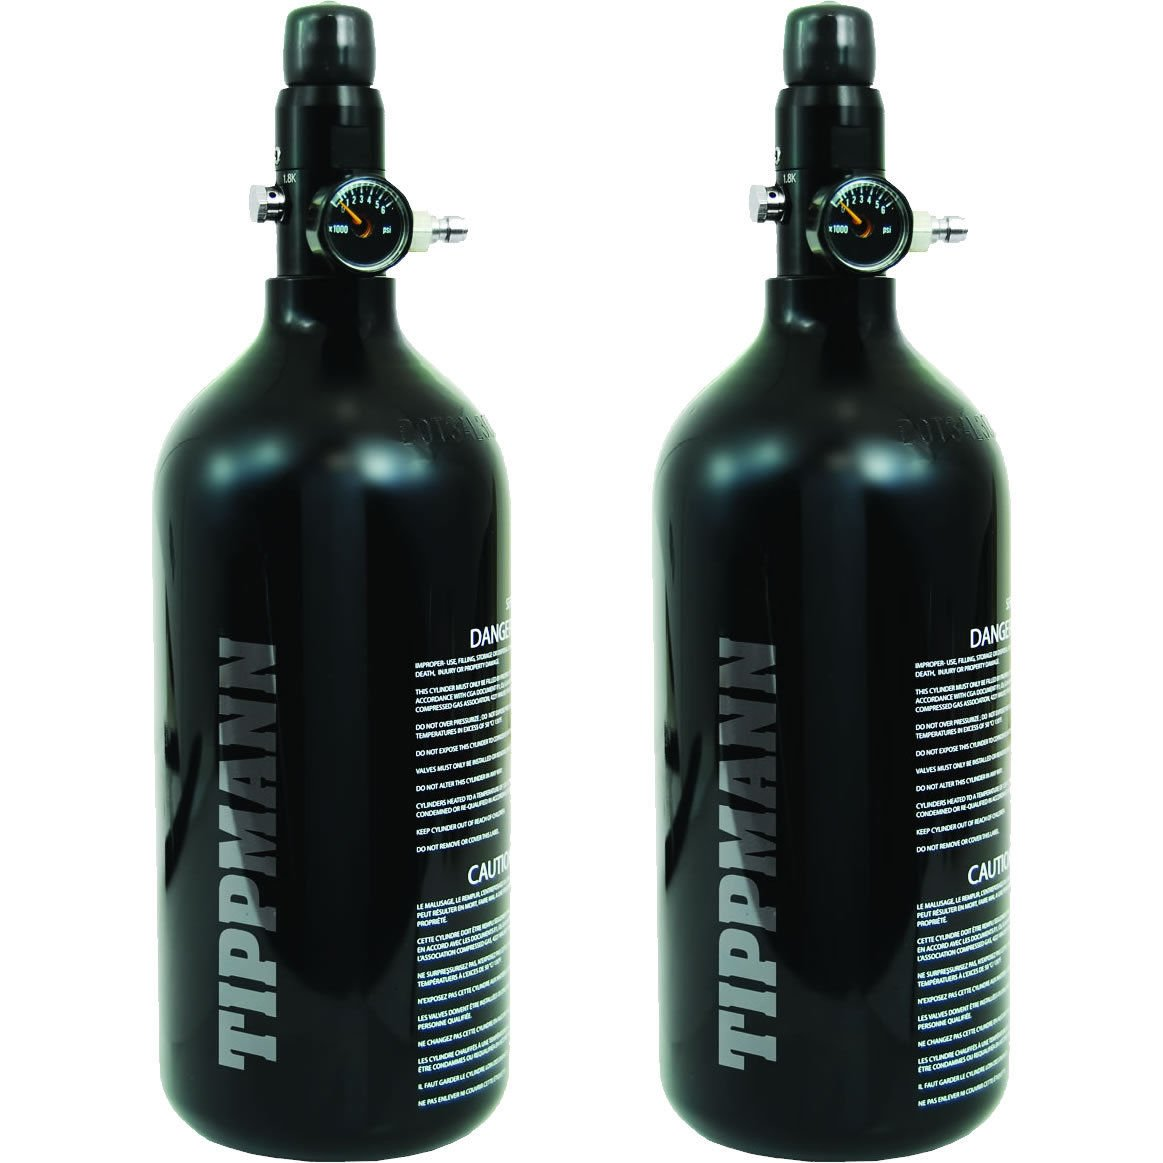 2 - Pack Tippmann 48ci 3000psi Aluminum HPA / Nitro / Compressed Air Tank